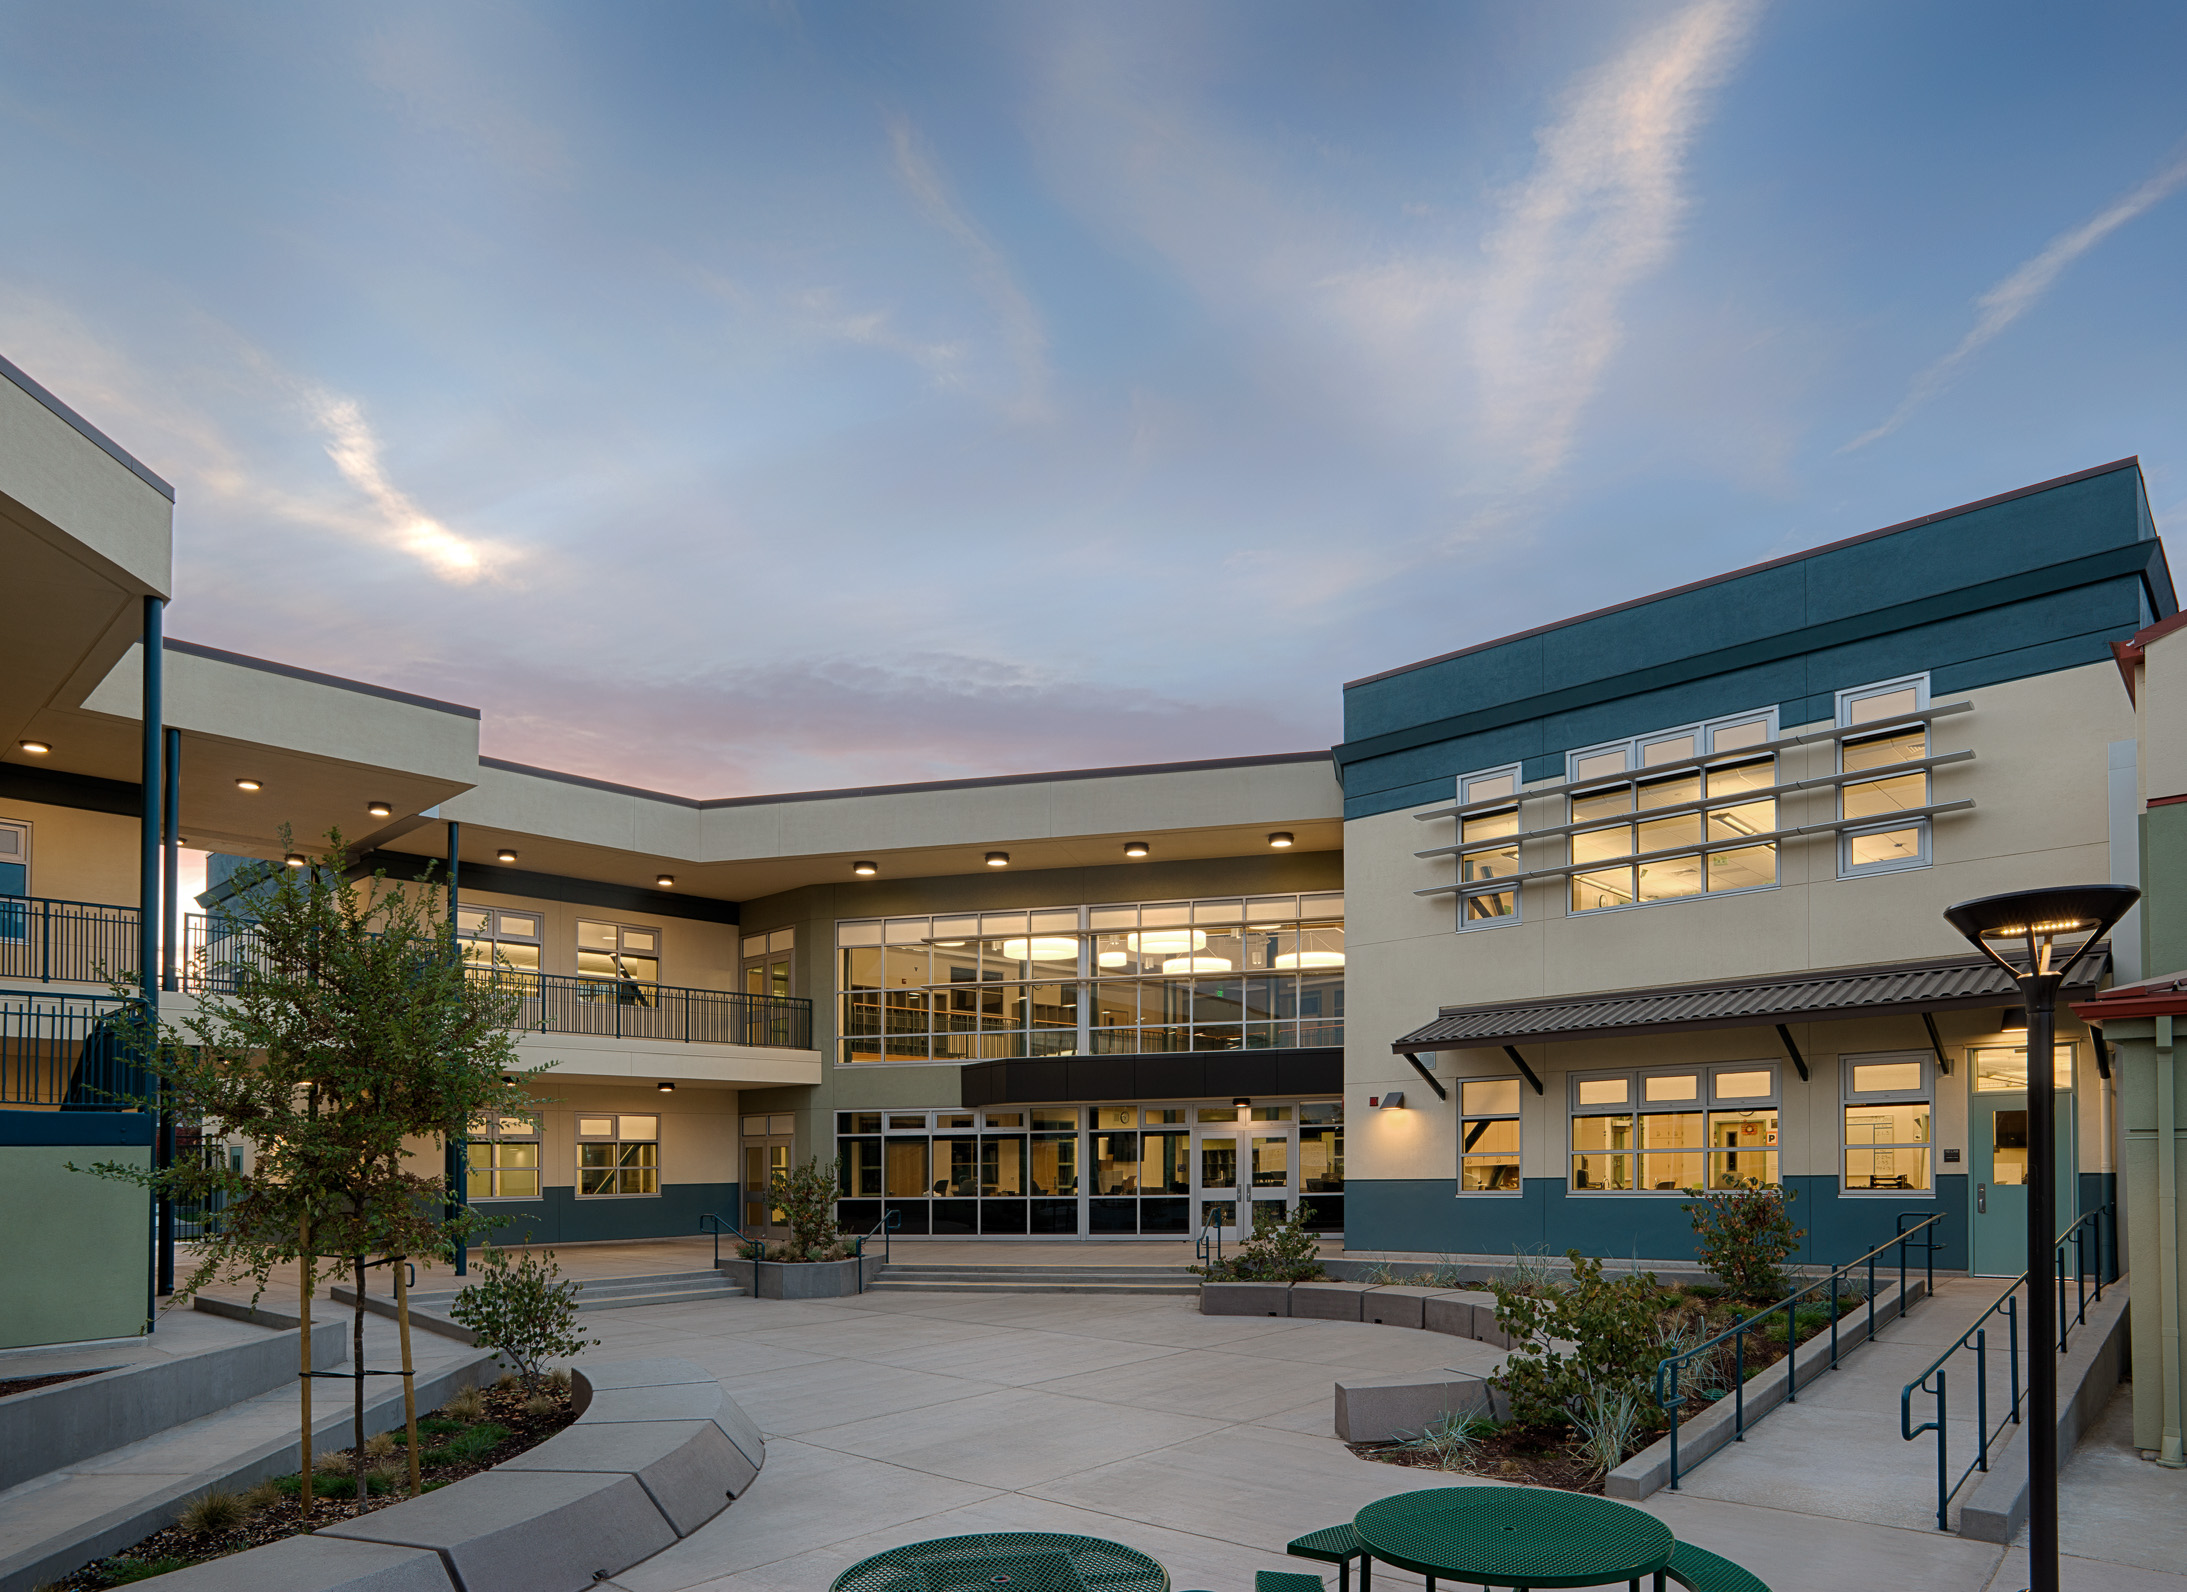 Image of Central Middle School